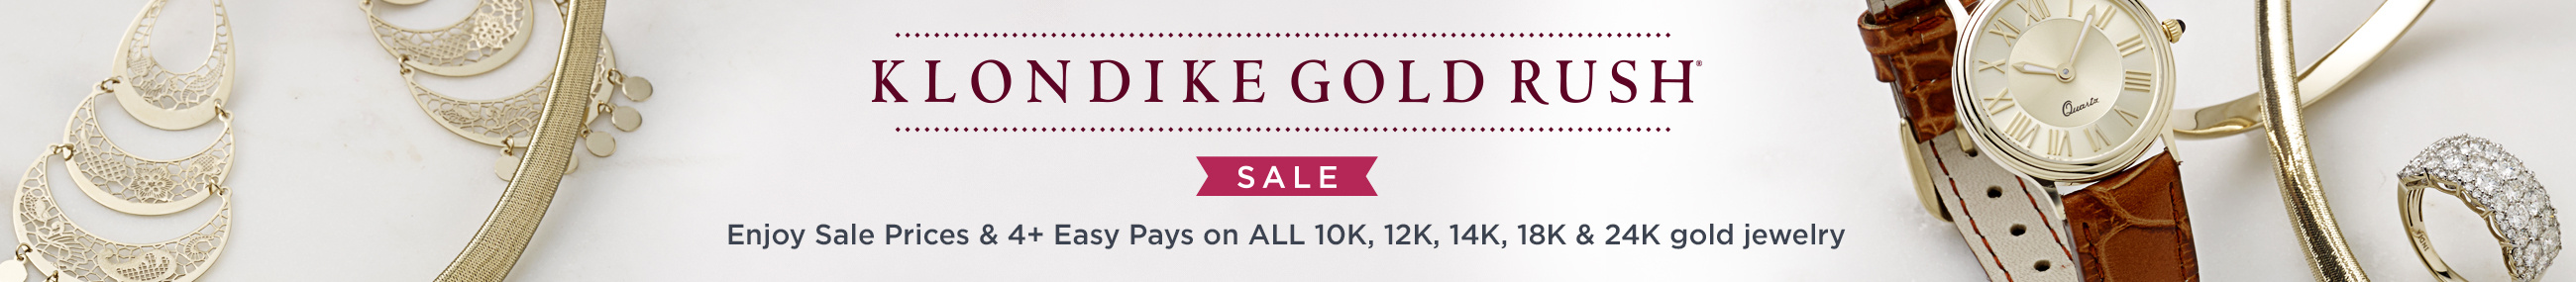 Klondike Gold Rush® Sale — Enjoy Sale Prices & 4+ Easy Pays on ALL 10K, 12K, 14K, 18K & 24K gold jewelry